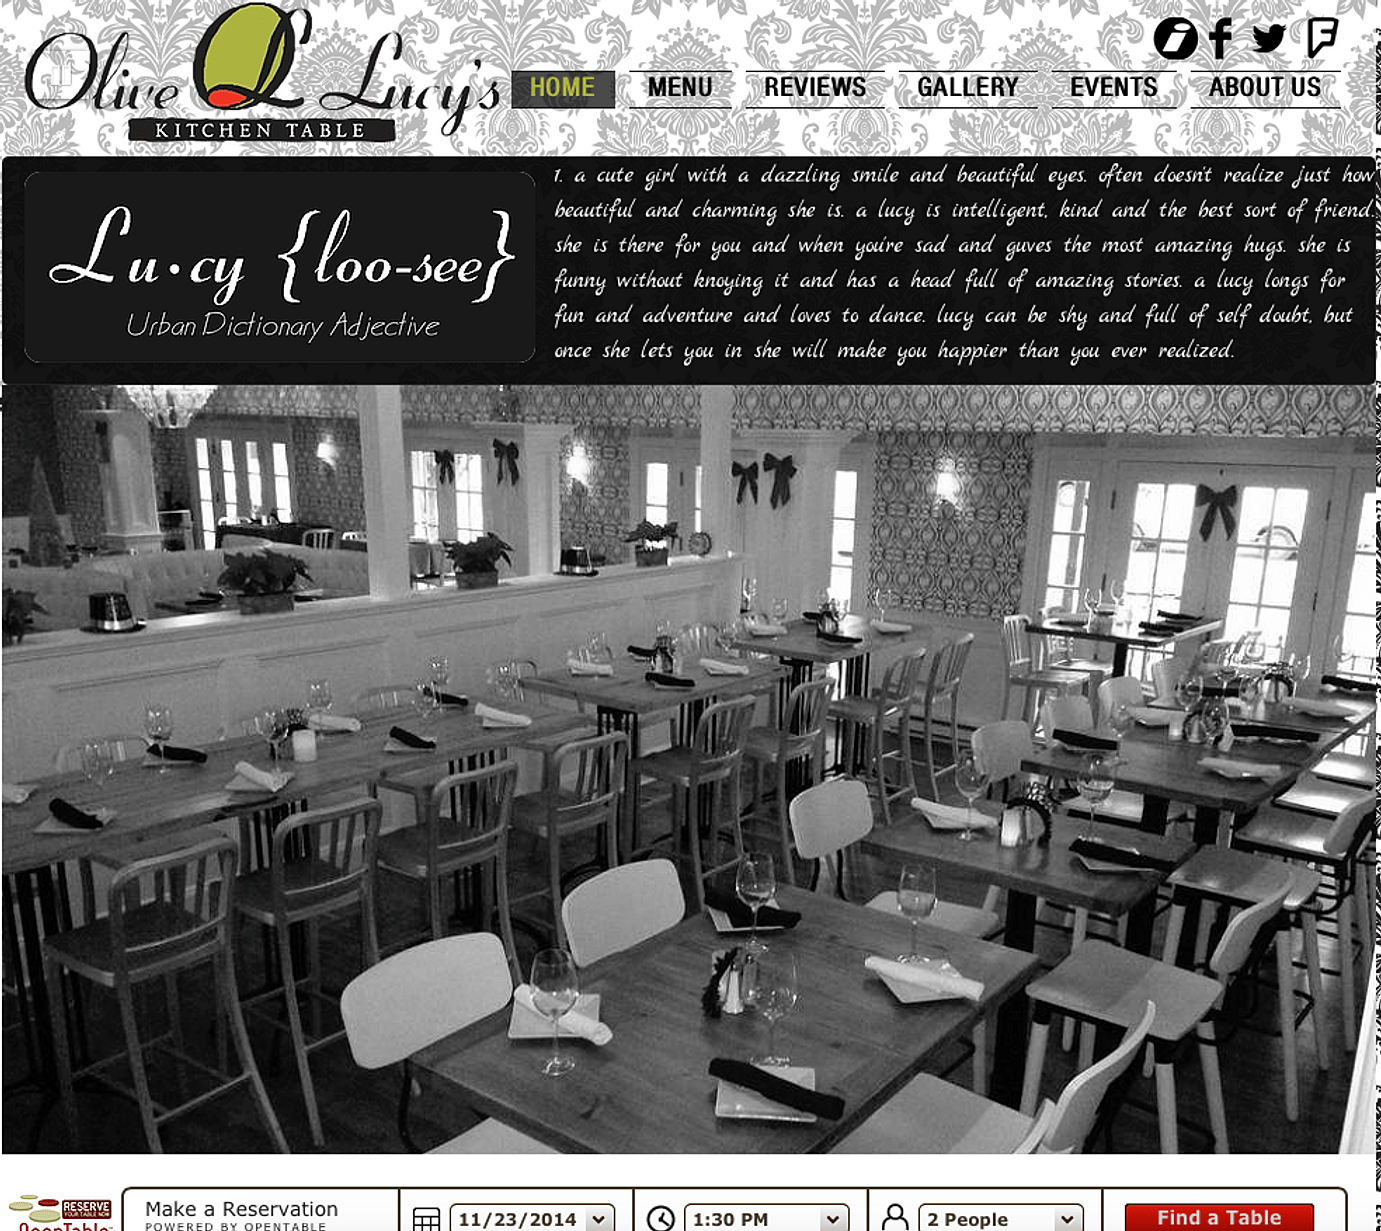 website kitchen table restaurant Olive Lucy s Kitchen Table